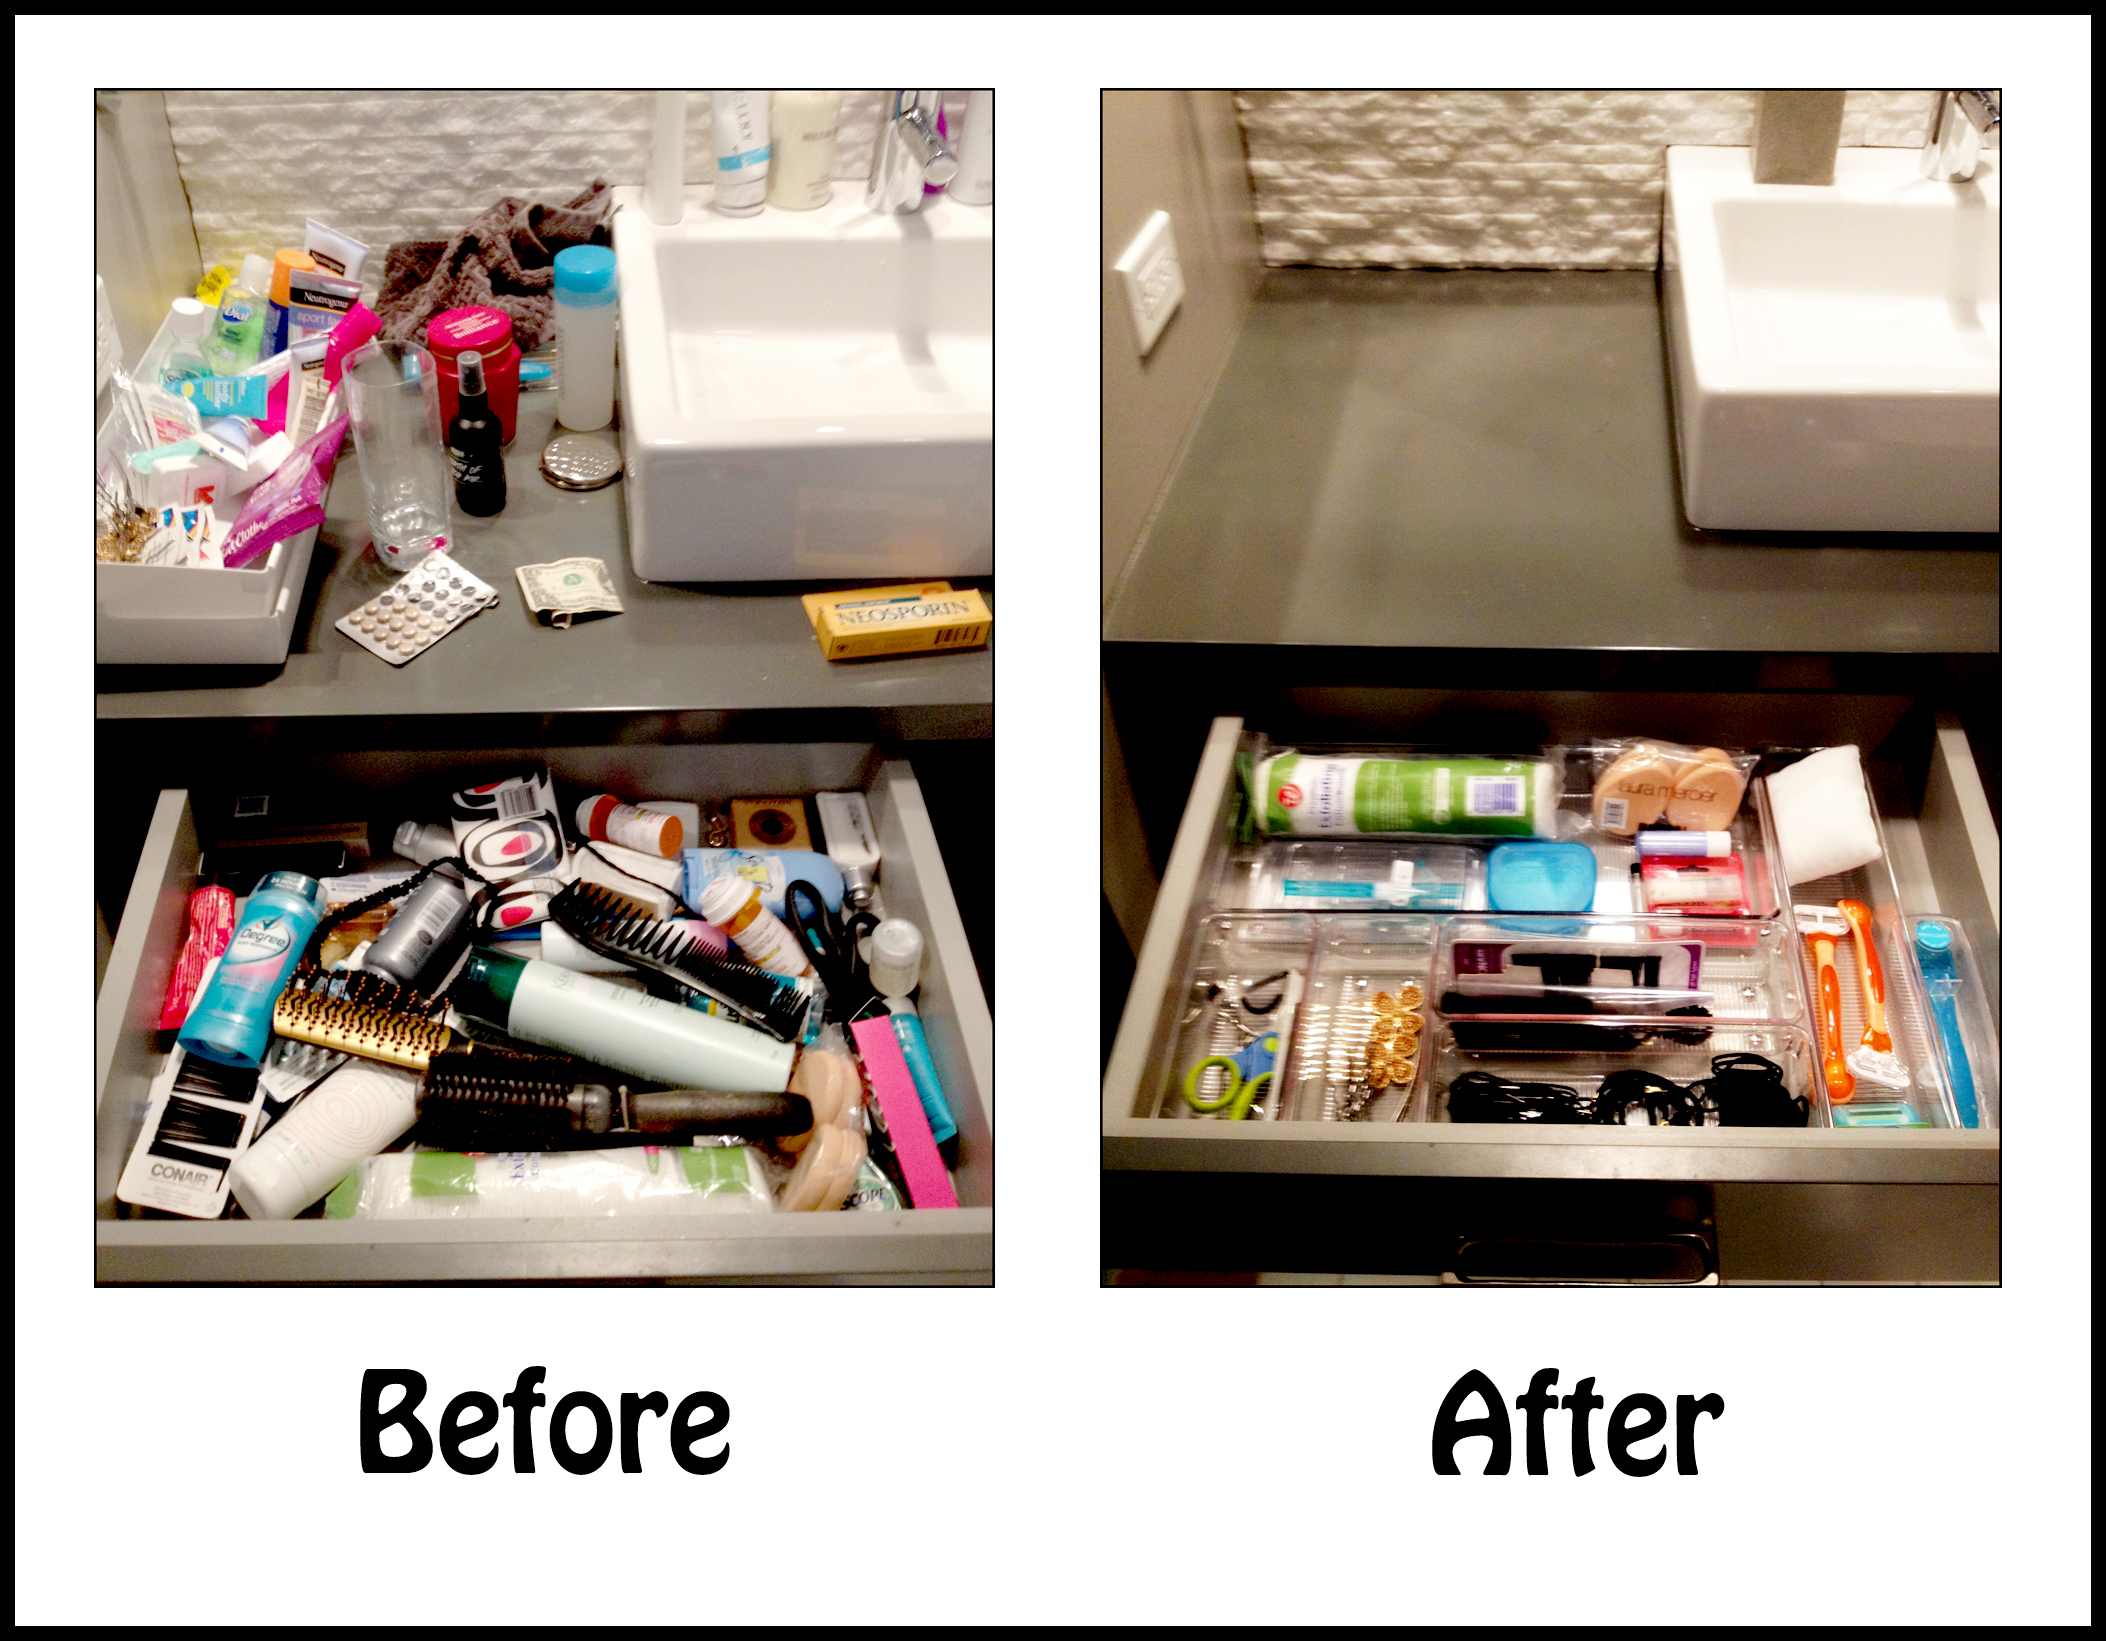 Extra time: Your bonus for staying organized!